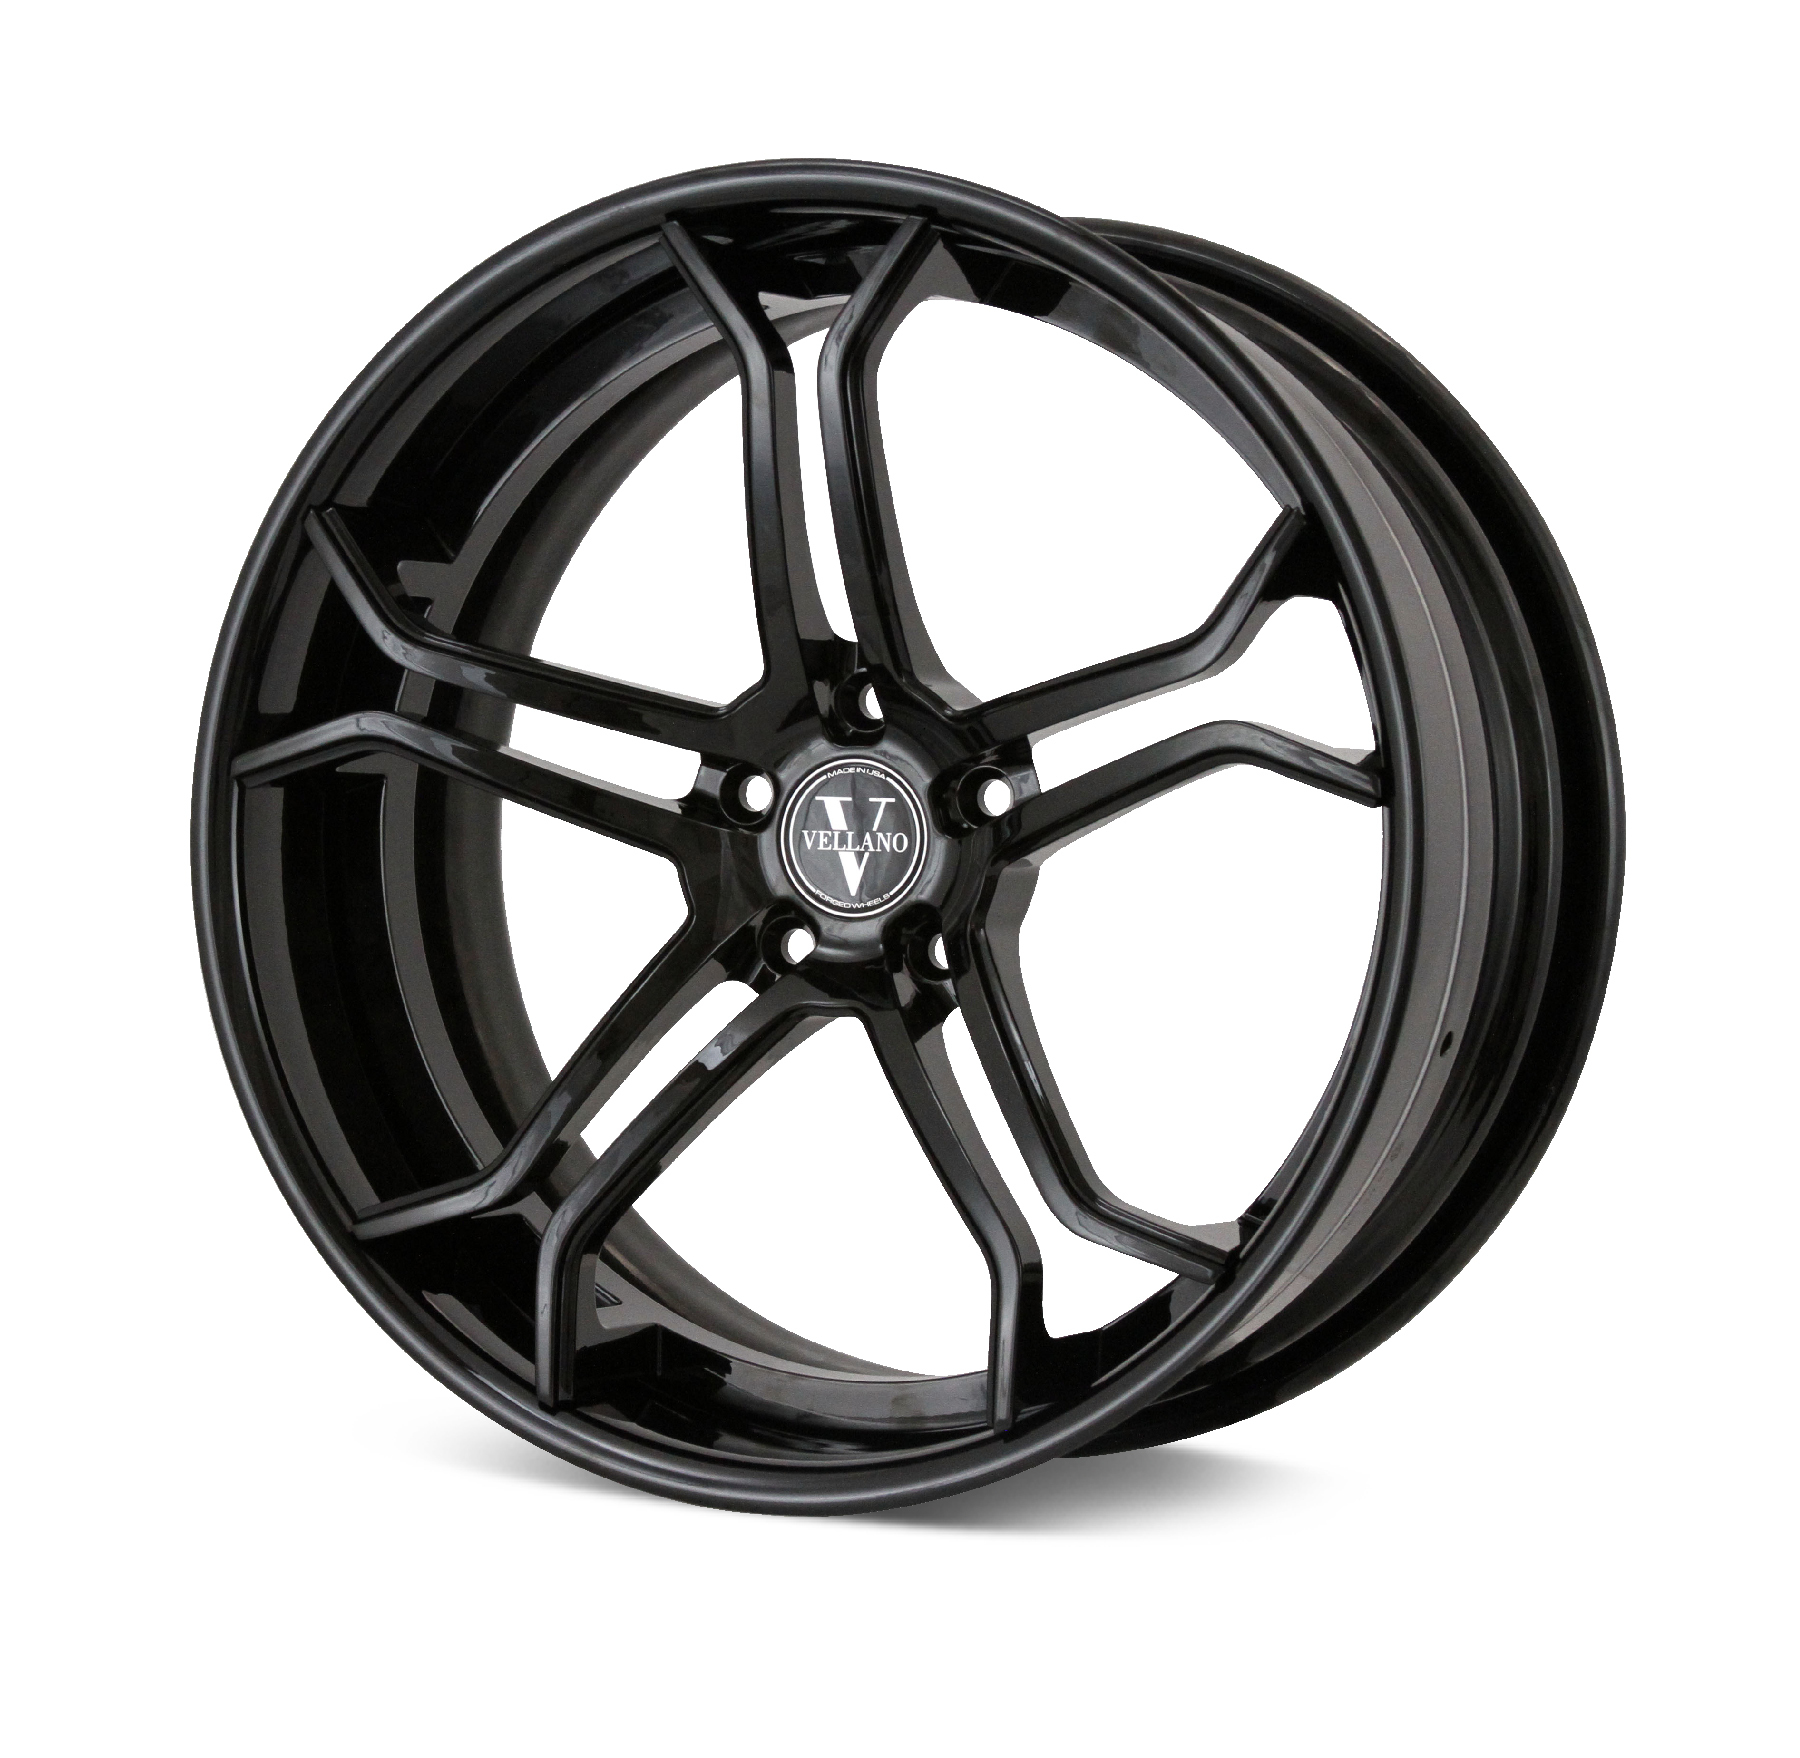 Vellano VCZ forged wheels